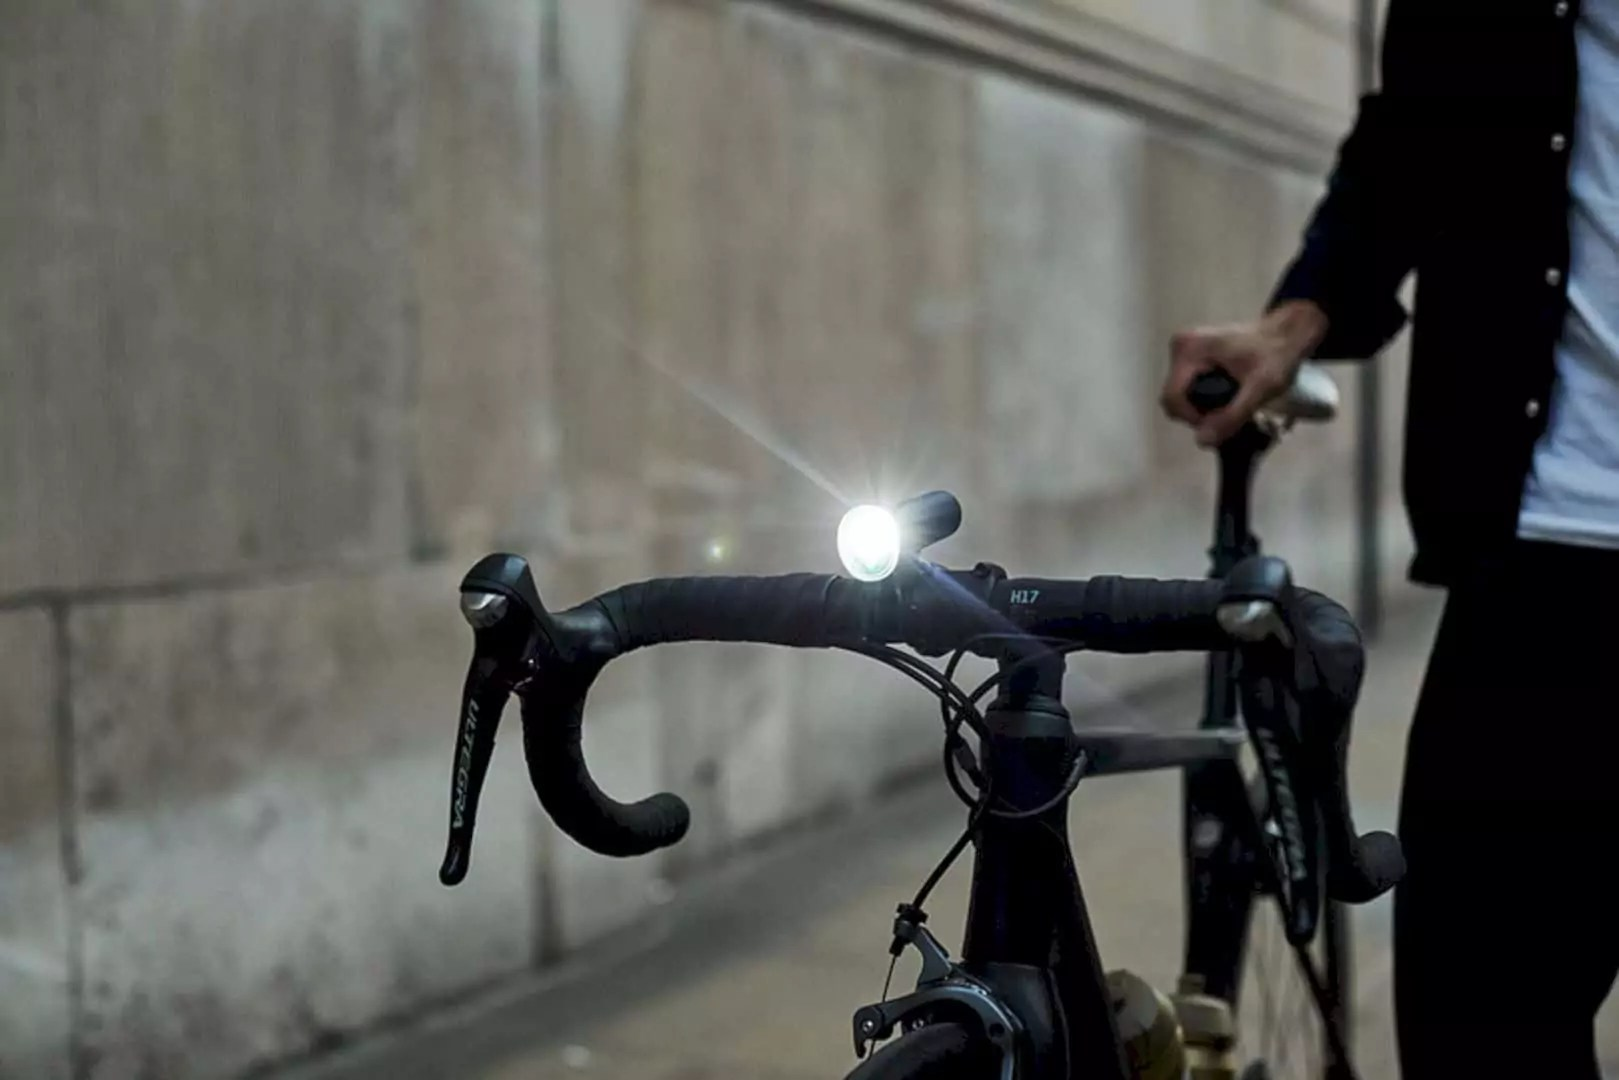 Laserlight Core: Projection Bike Light to Ensure Safer Cycling